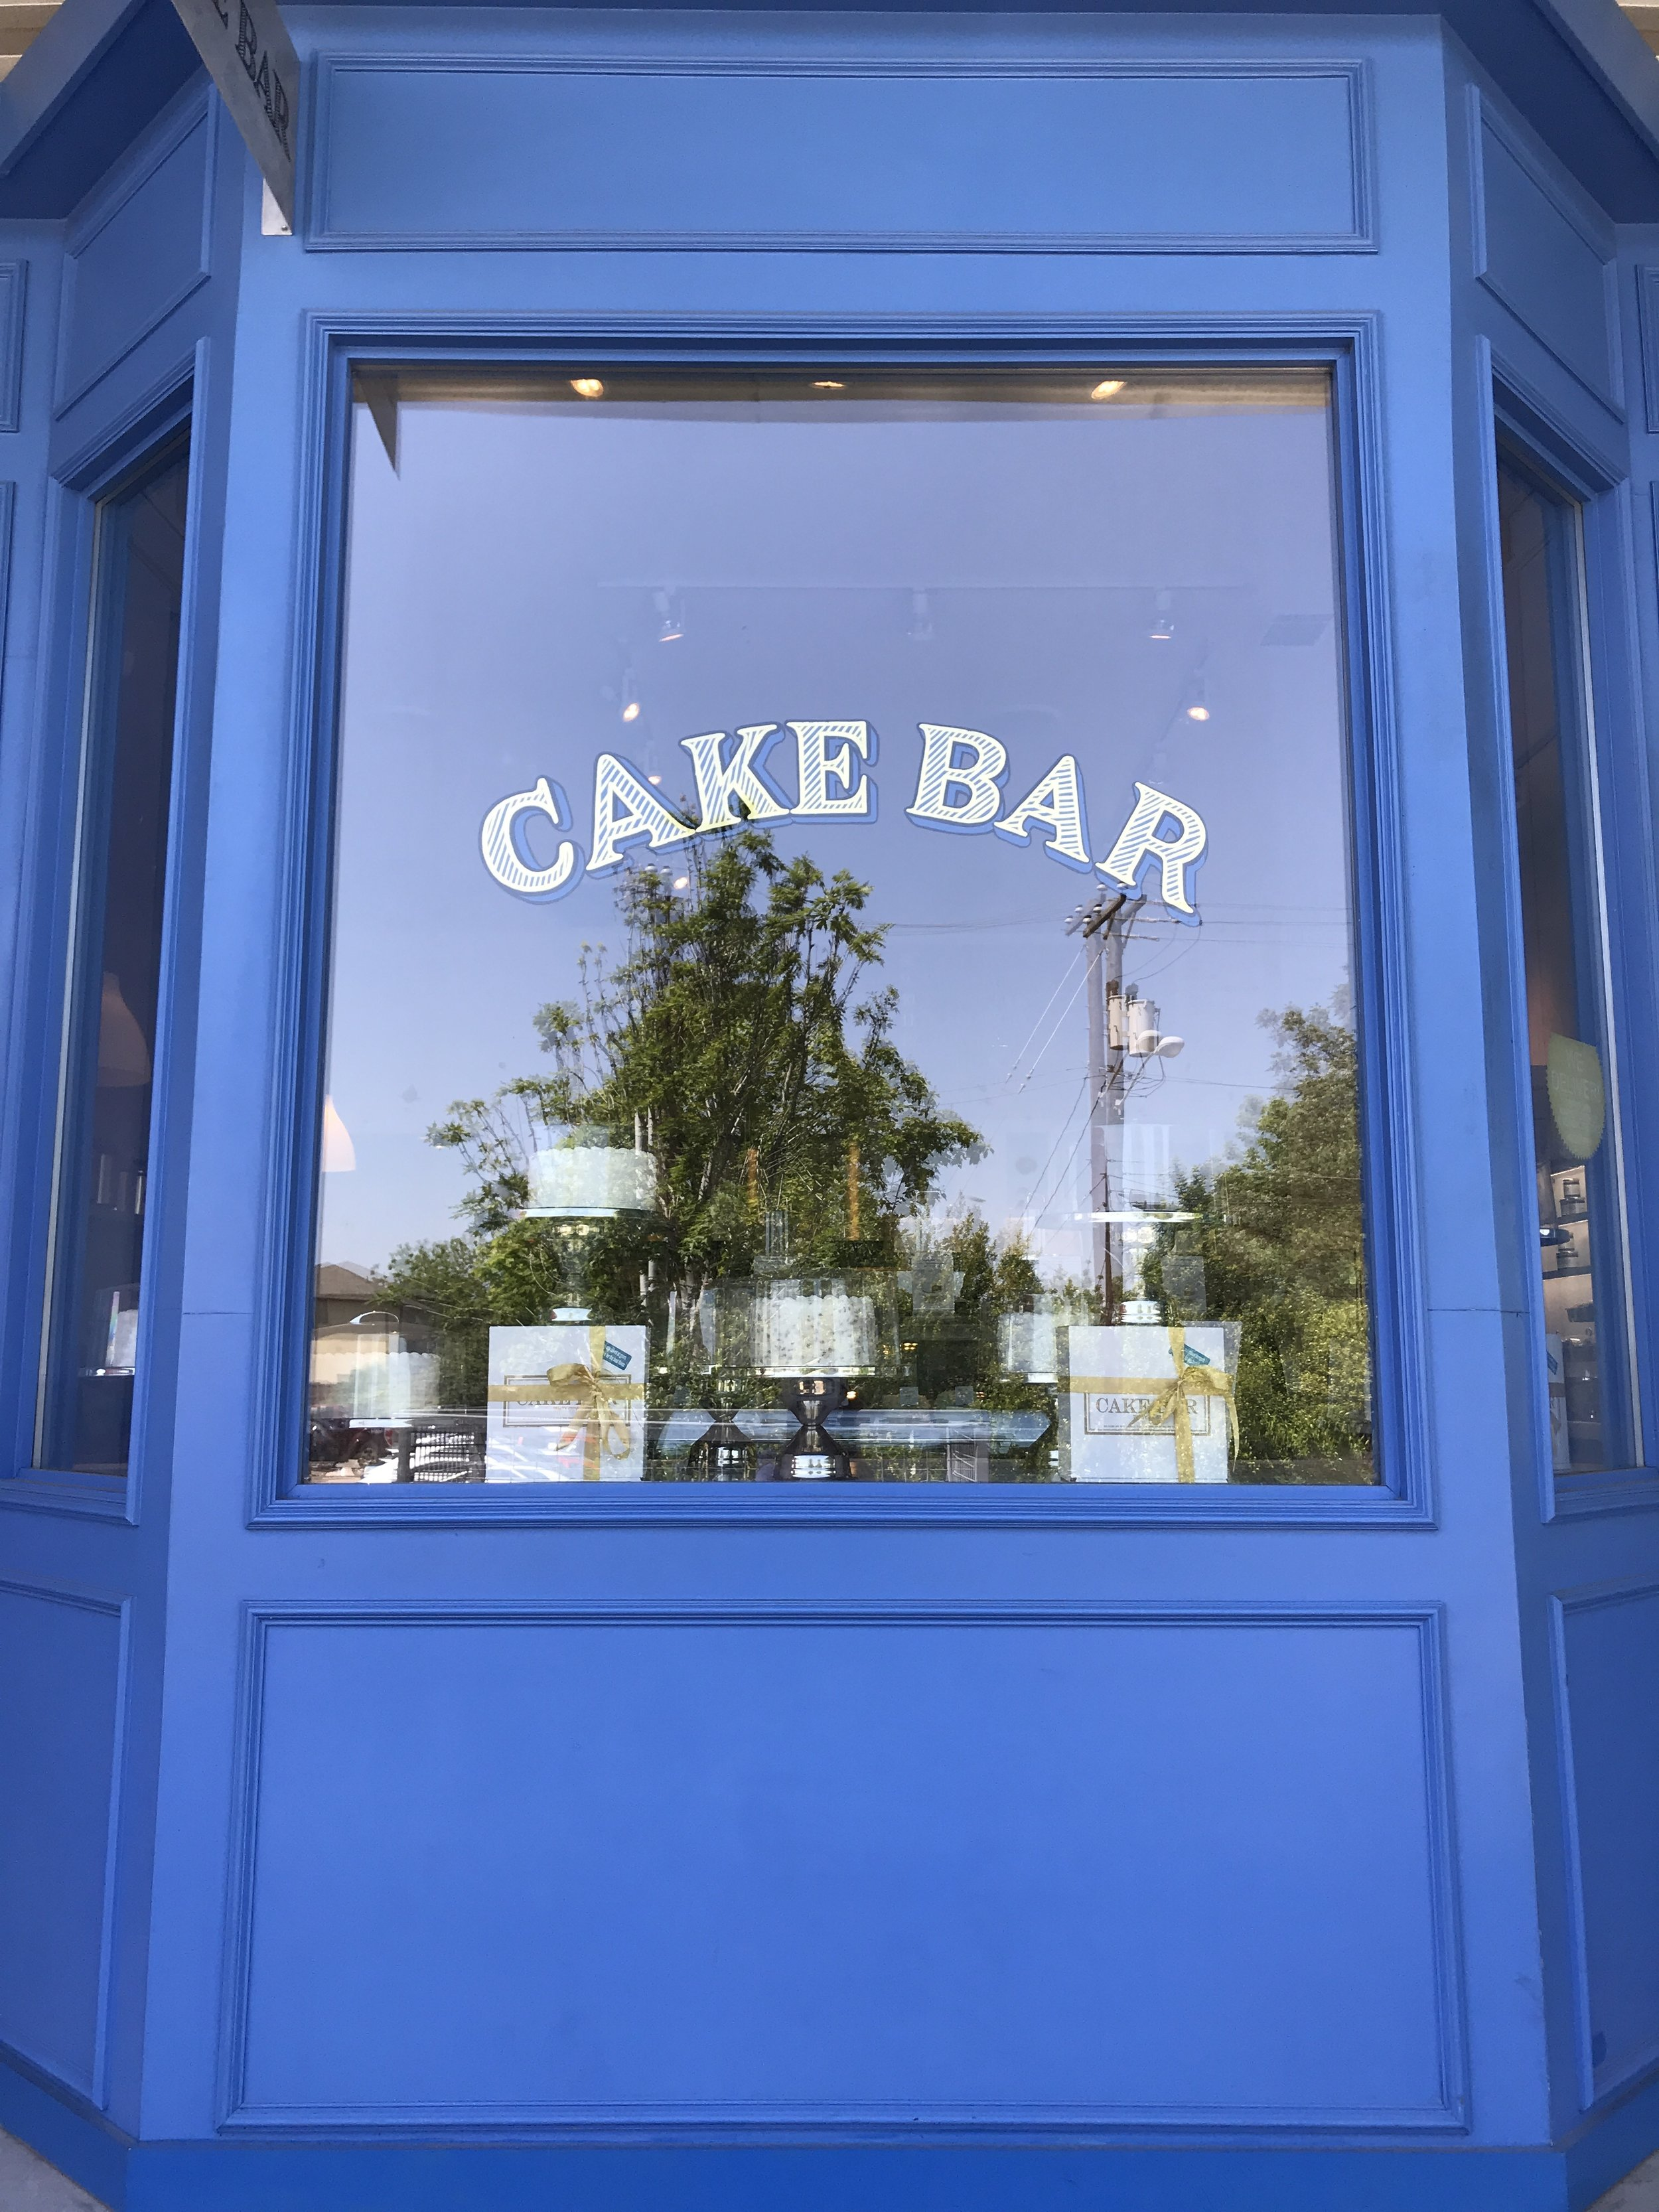 The Cake Bar offers a wide range of delicious cakes in various sizes.